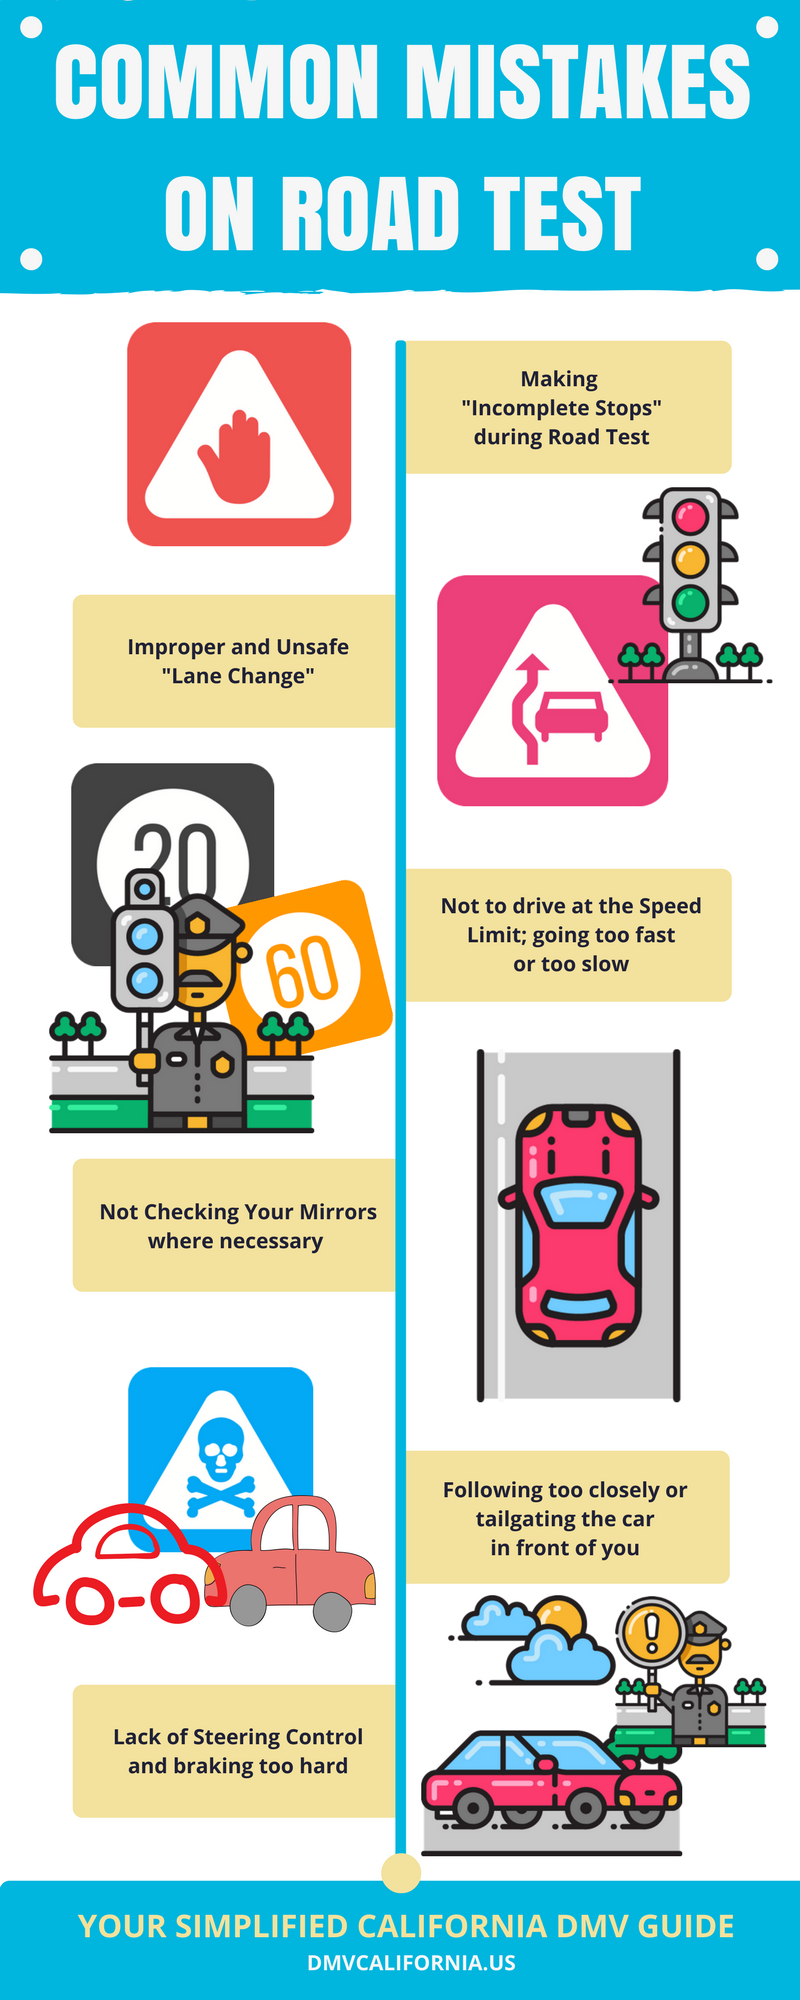 Driving Test Tips That No One Actually Tells You, Secret of Passing Test